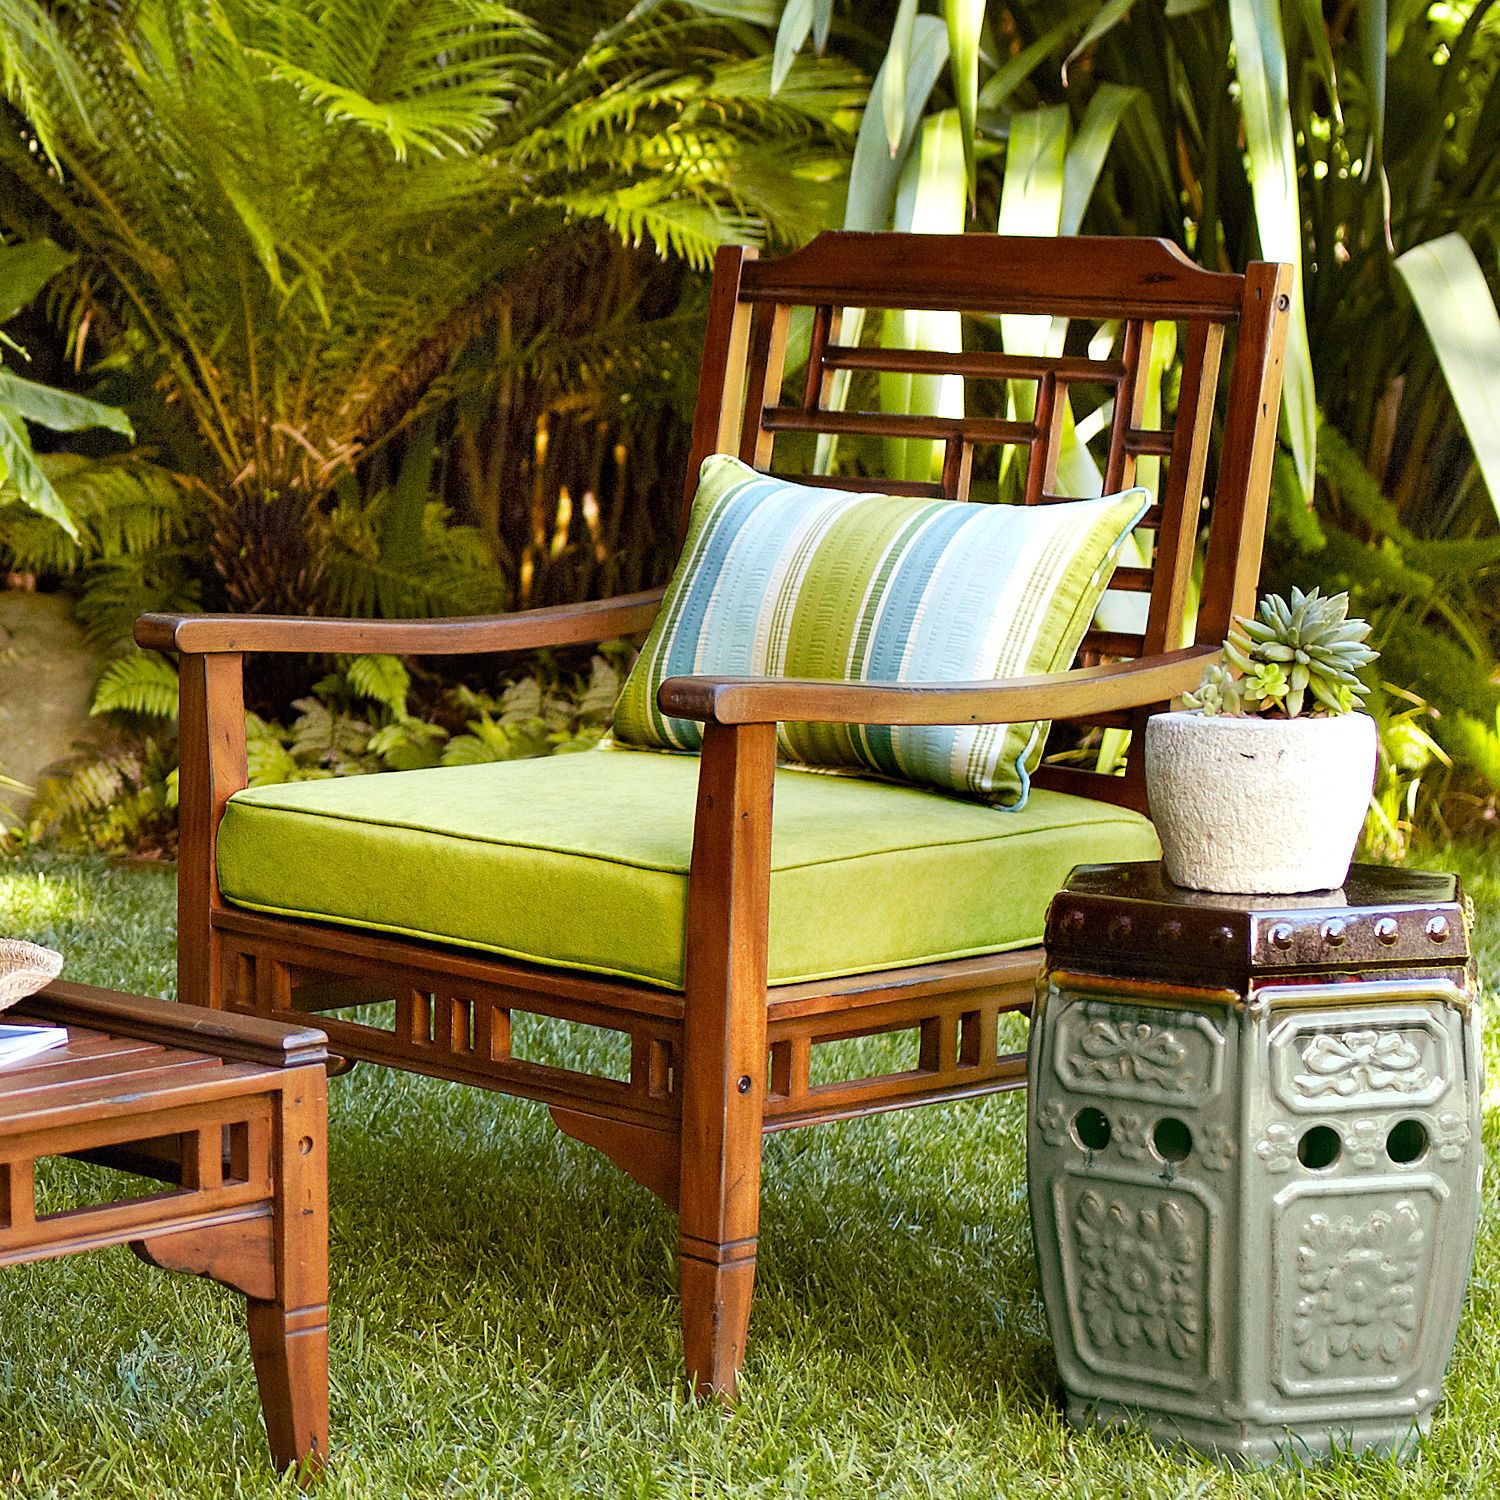 Outdoor furniture stellar interior design for I furniture outdoor furniture